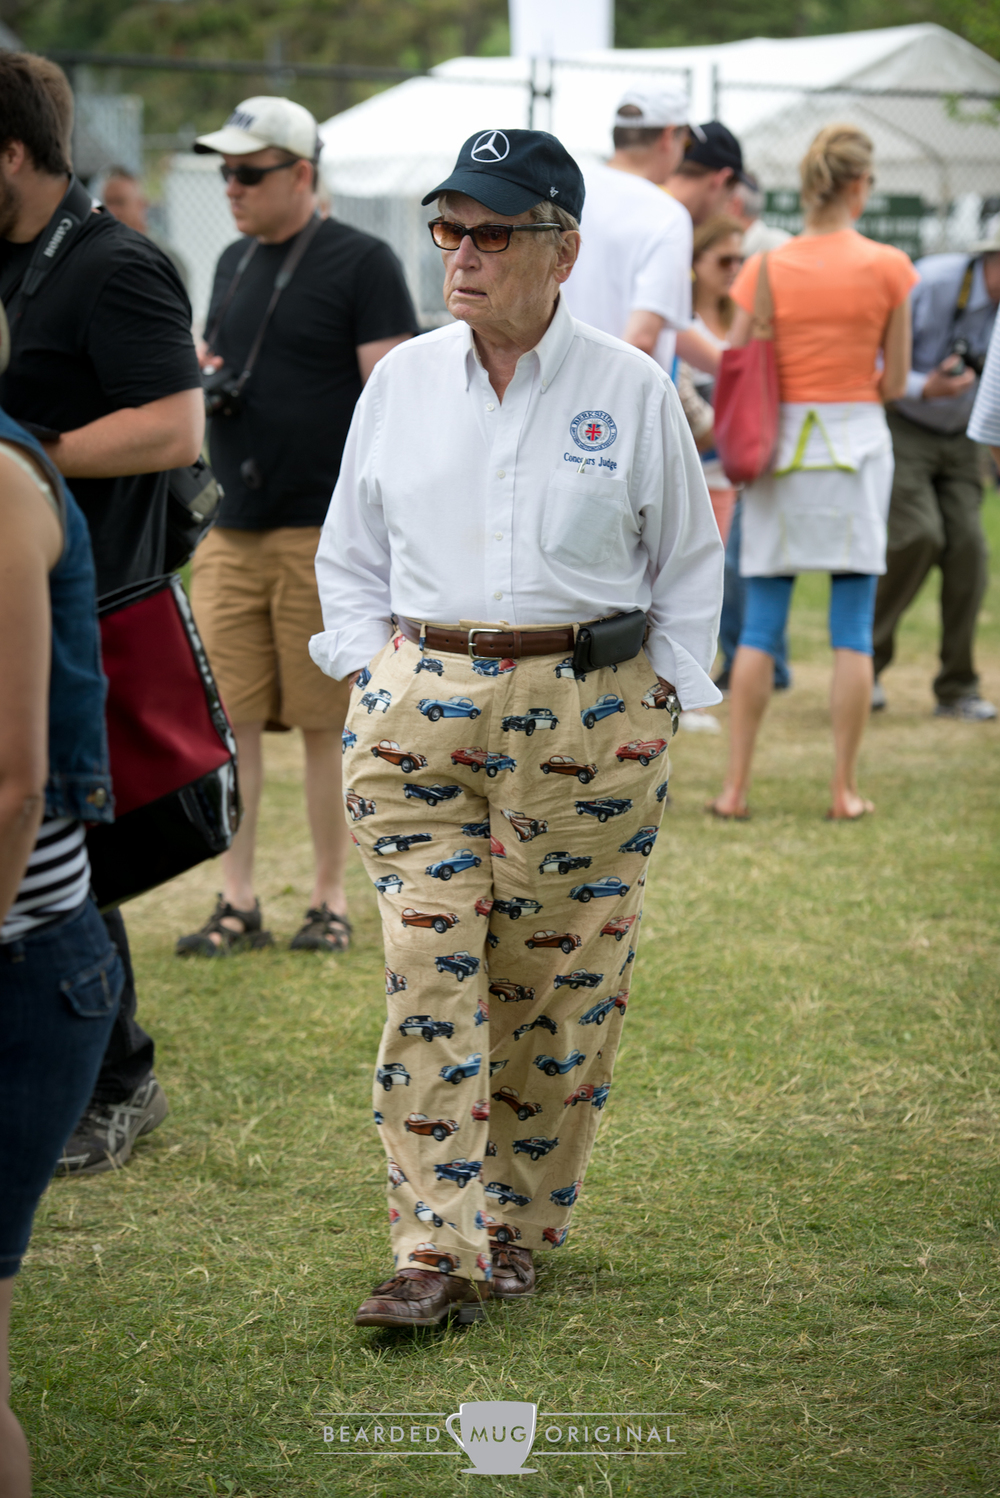 I need to find me a pair of these pants. Styling!